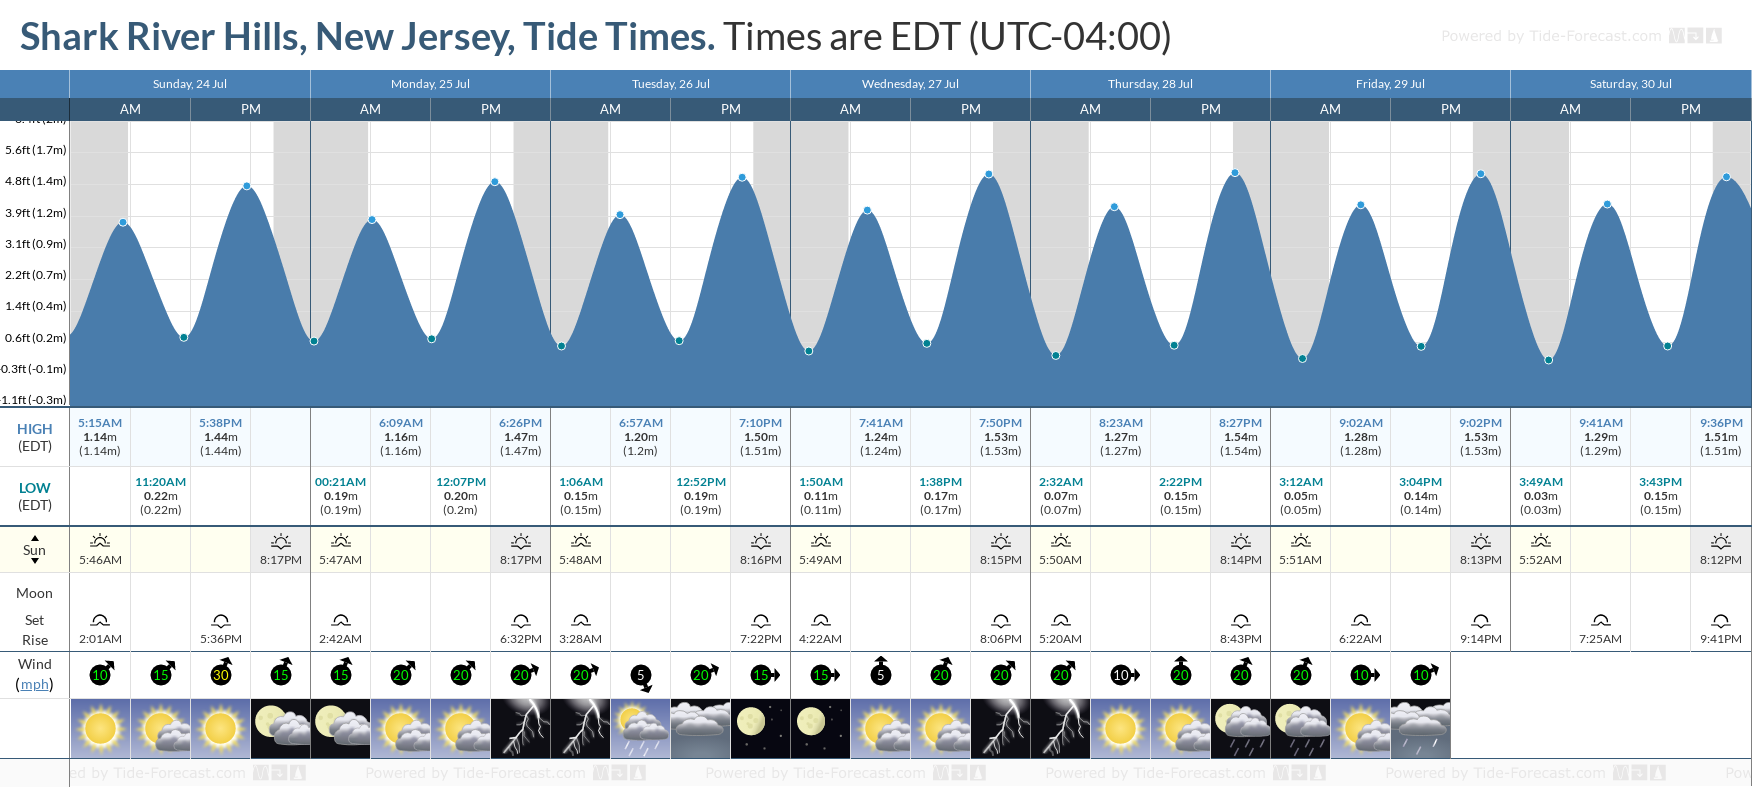 Shark River Hills, New Jersey Tide Chart including high and low tide tide times for the next 7 days